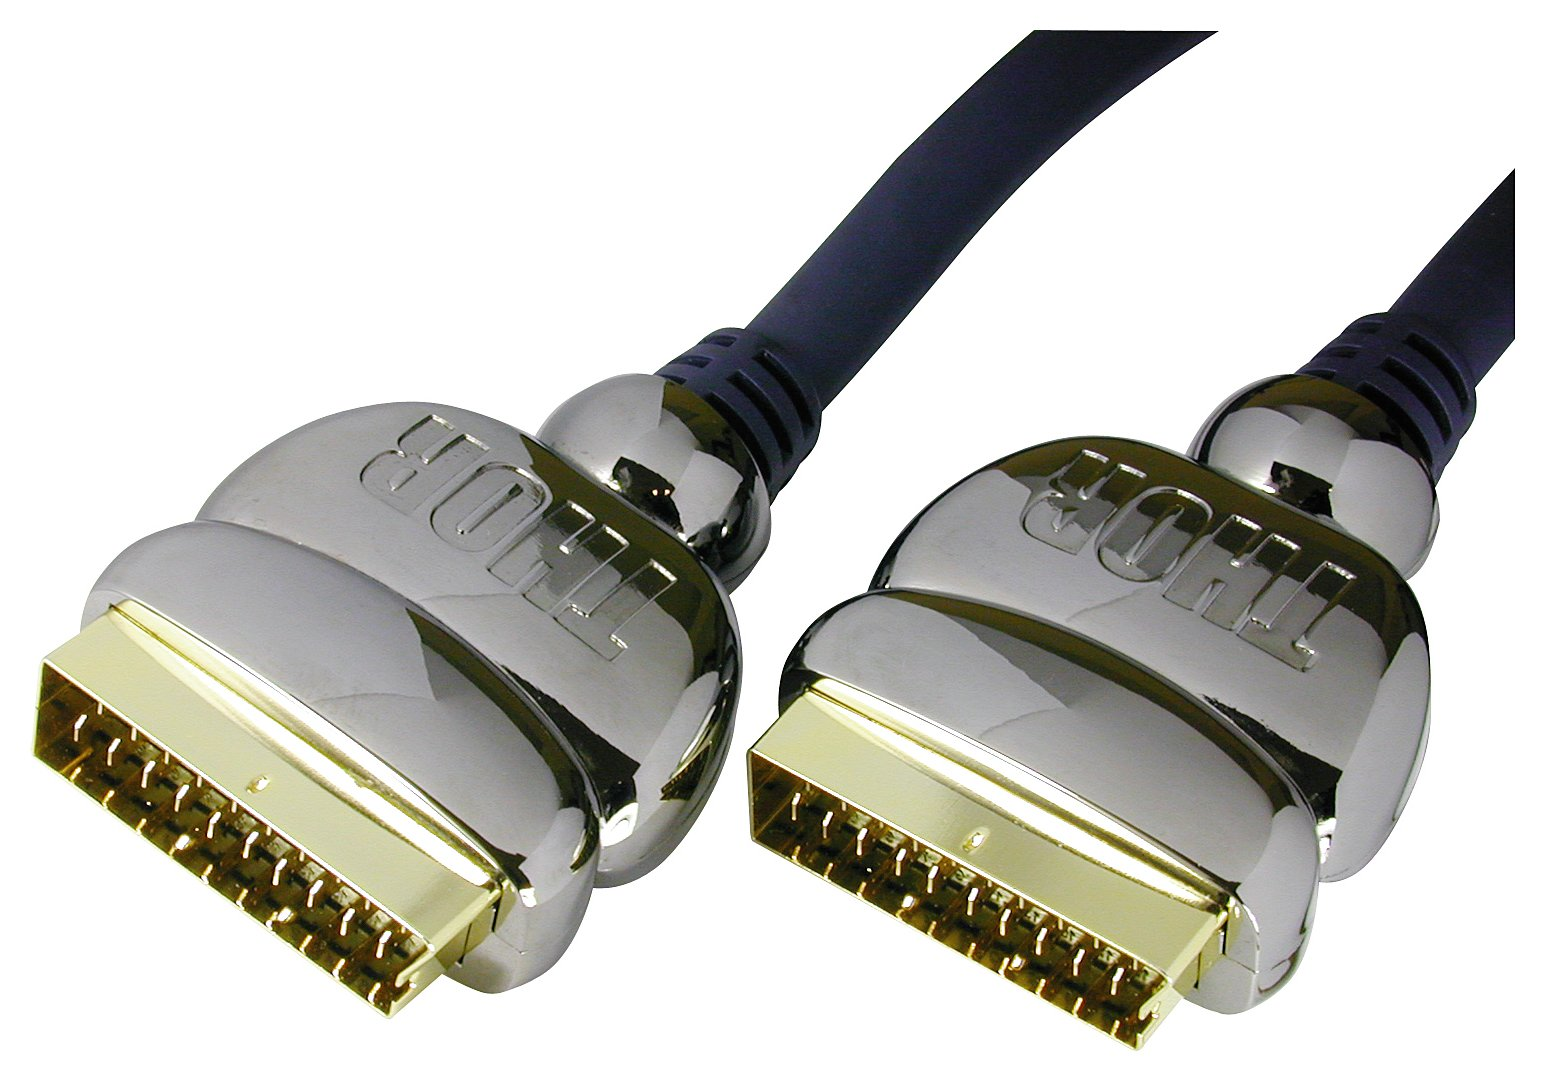 Thor Thor - 1.5 Metre Scart to Scart Cable